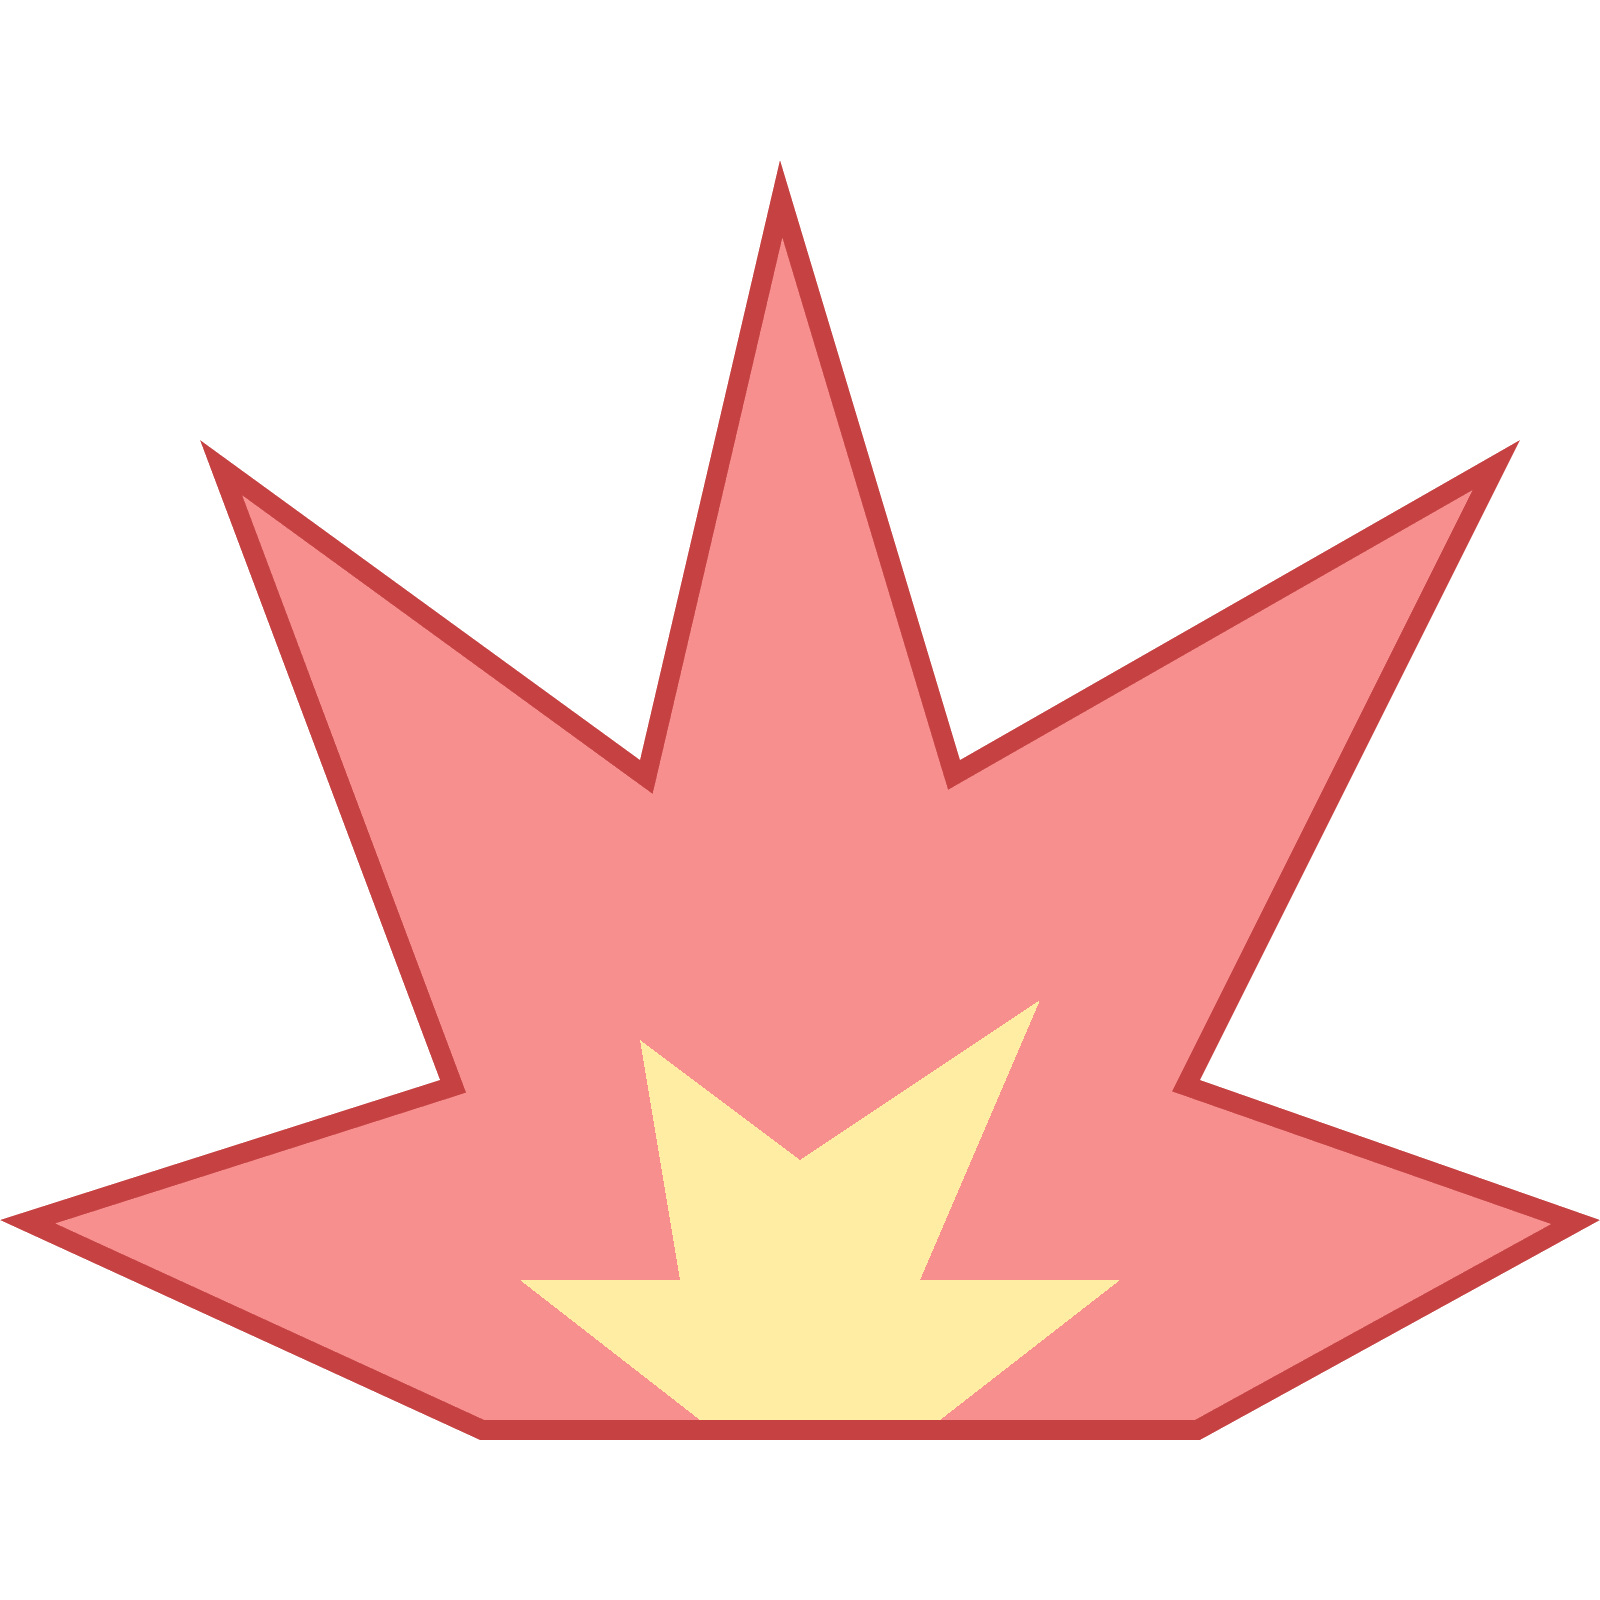 Explosion vector png. Icon free download and